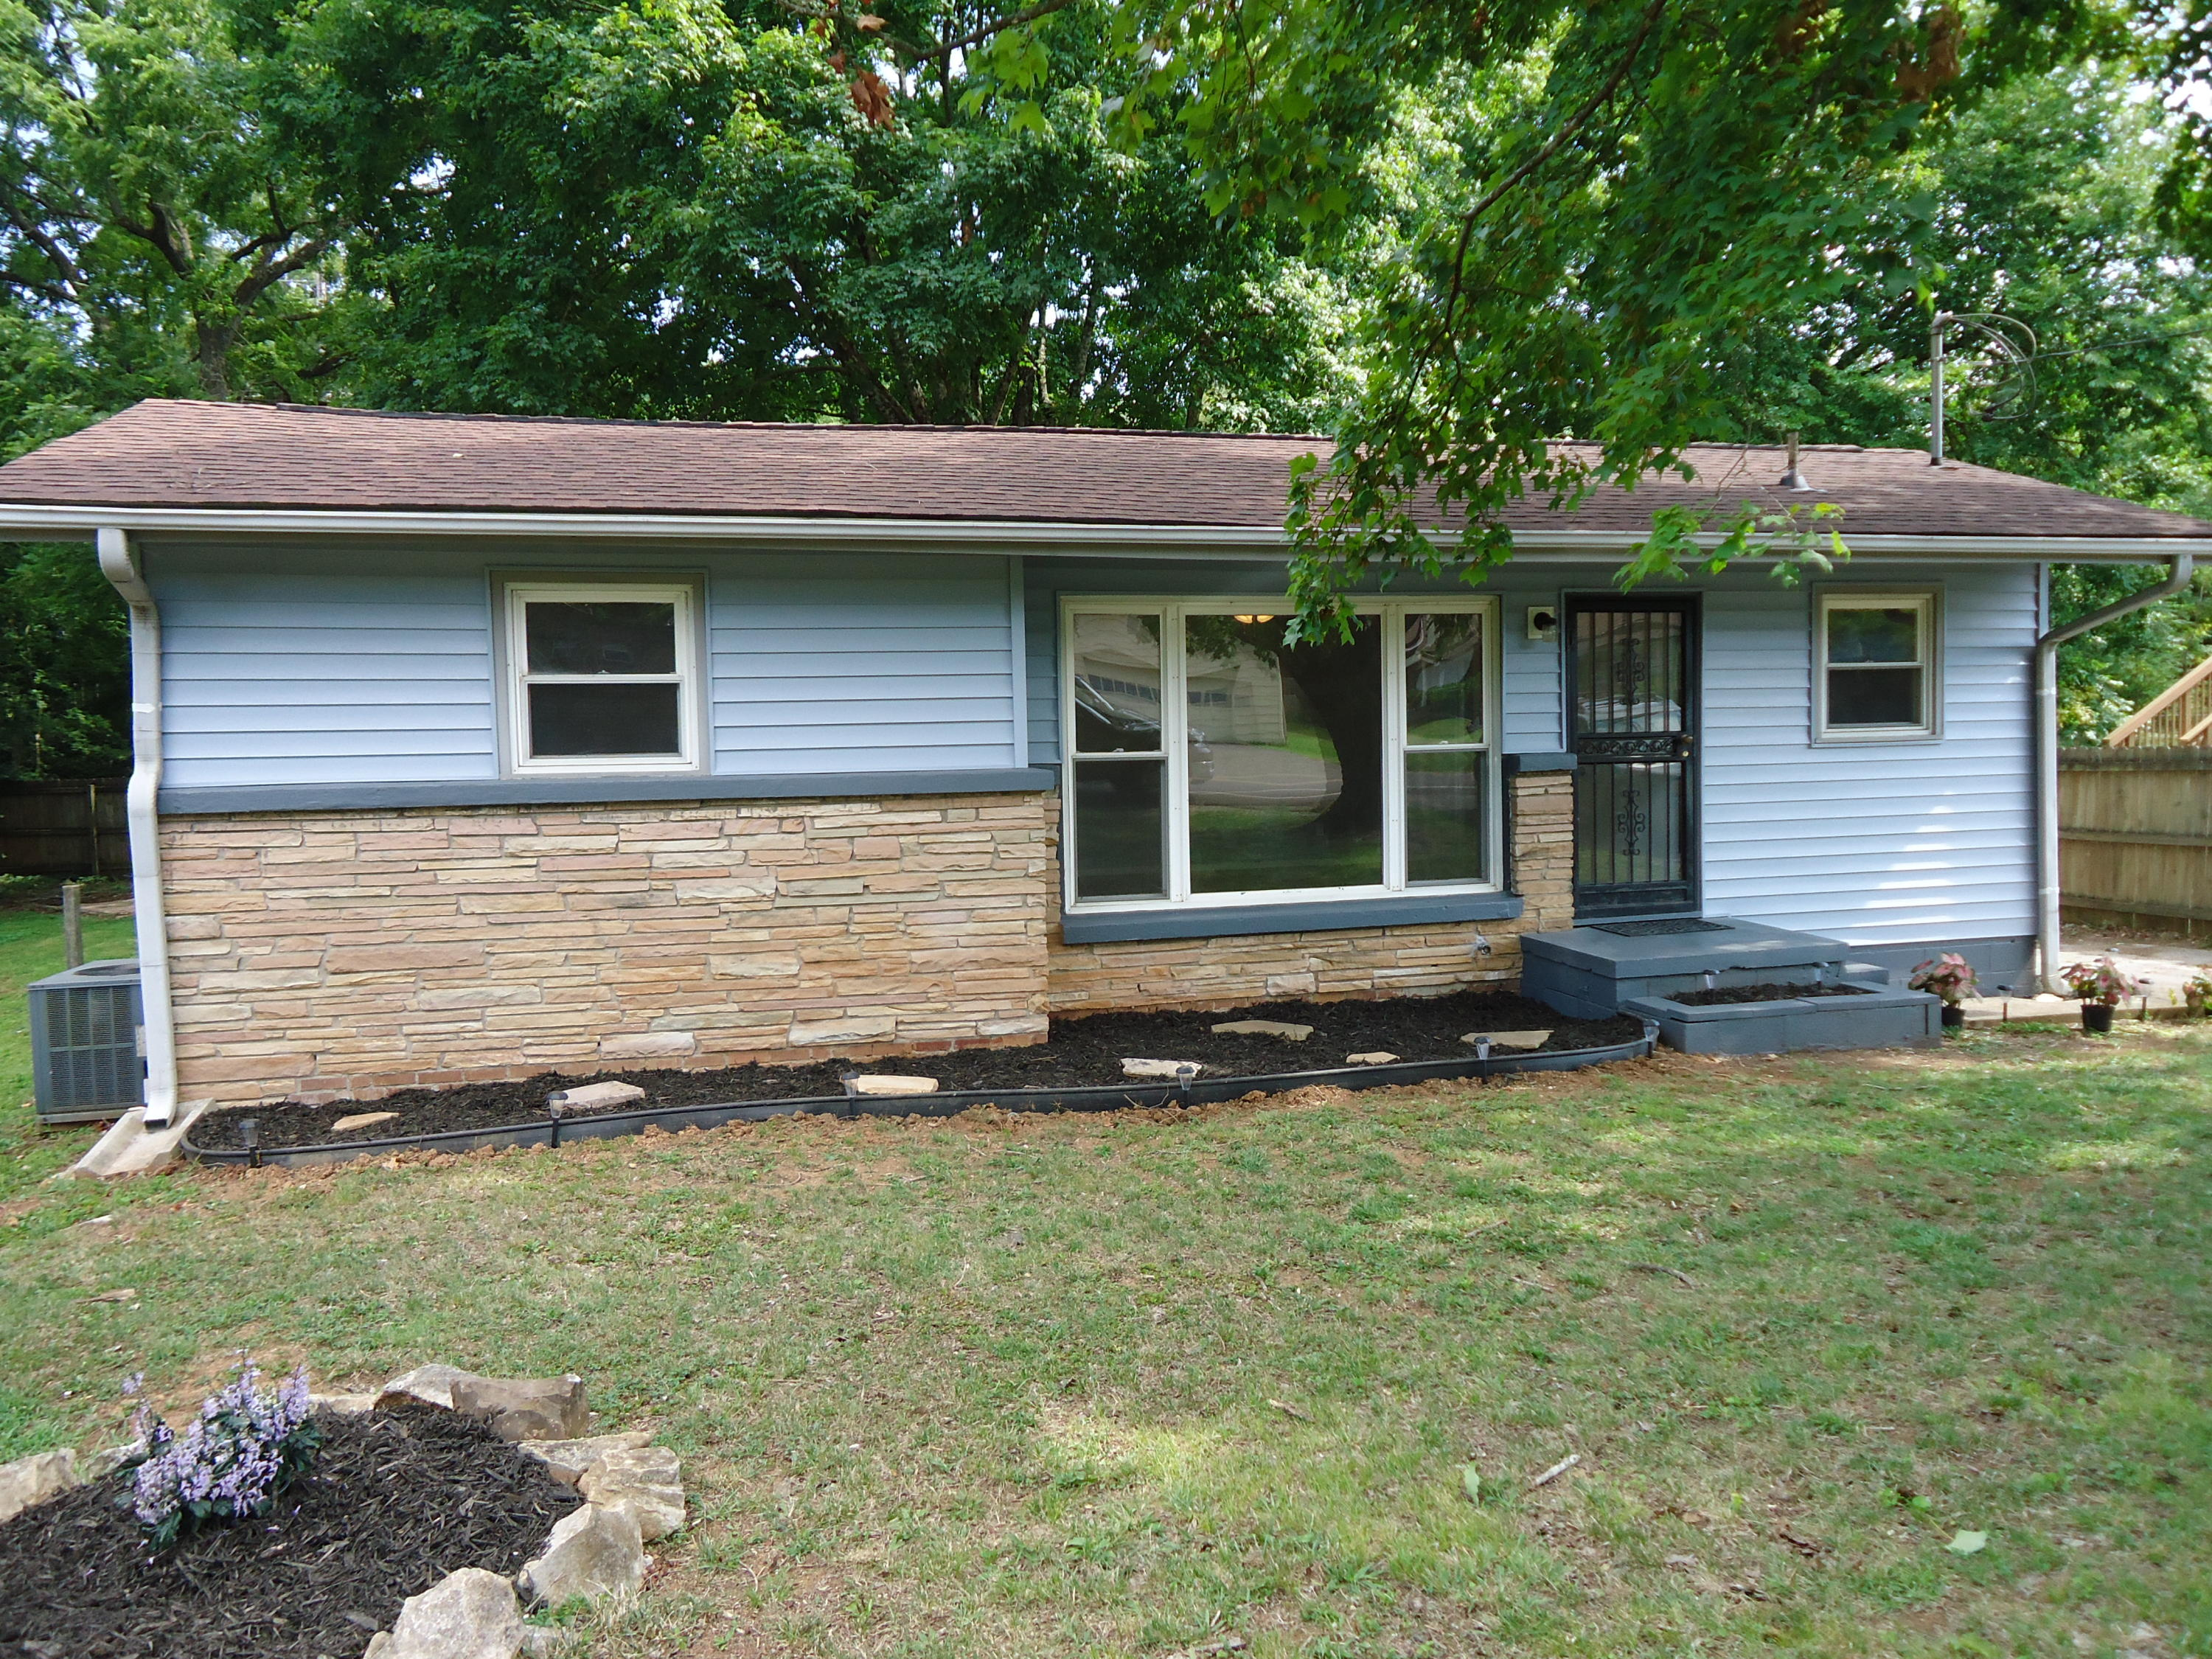 526 Taliwa, Knoxville, Tennessee, United States 37920, 3 Bedrooms Bedrooms, ,2 BathroomsBathrooms,Single Family,For Sale,Taliwa,973702